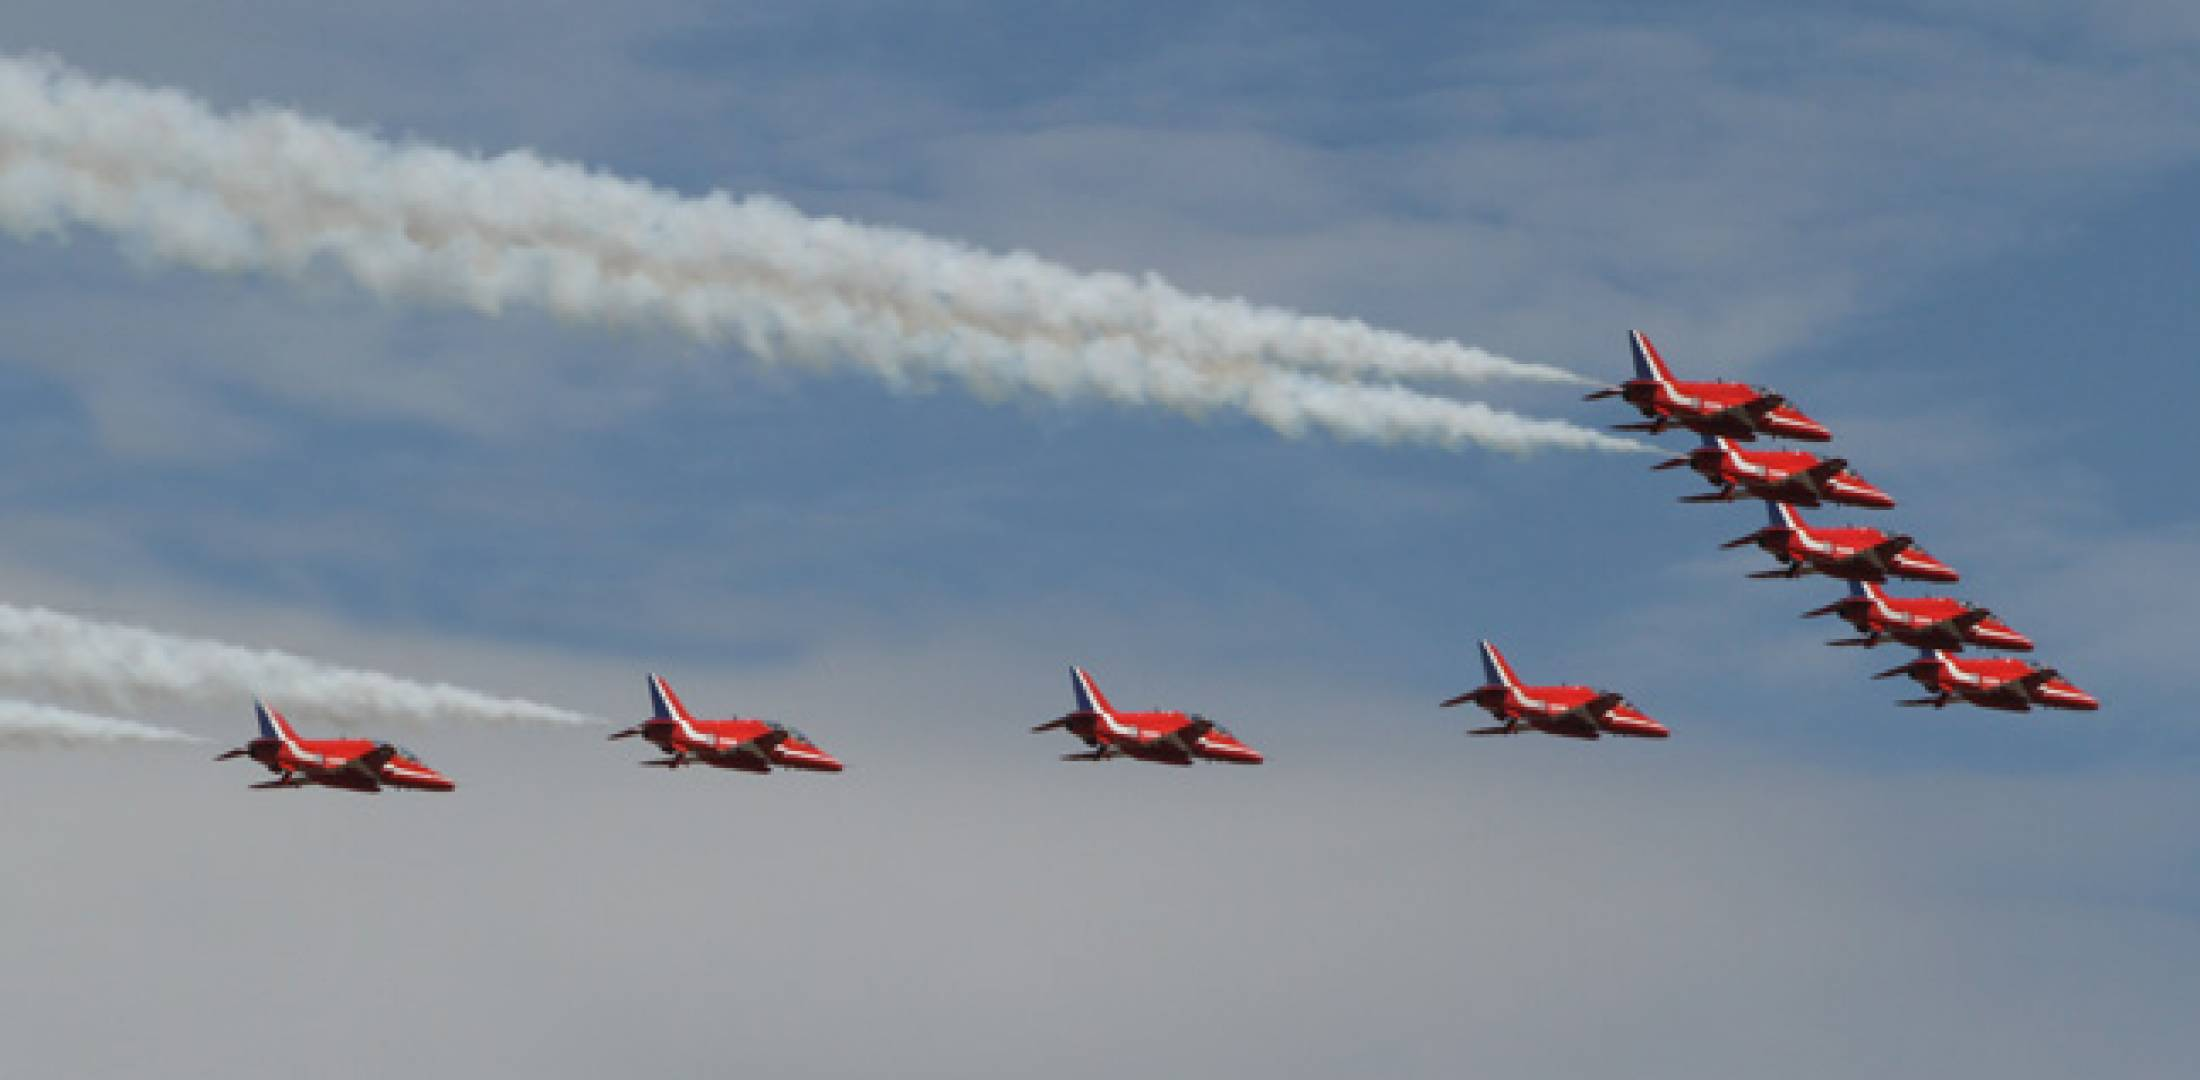 Red Arrows at Farnborough